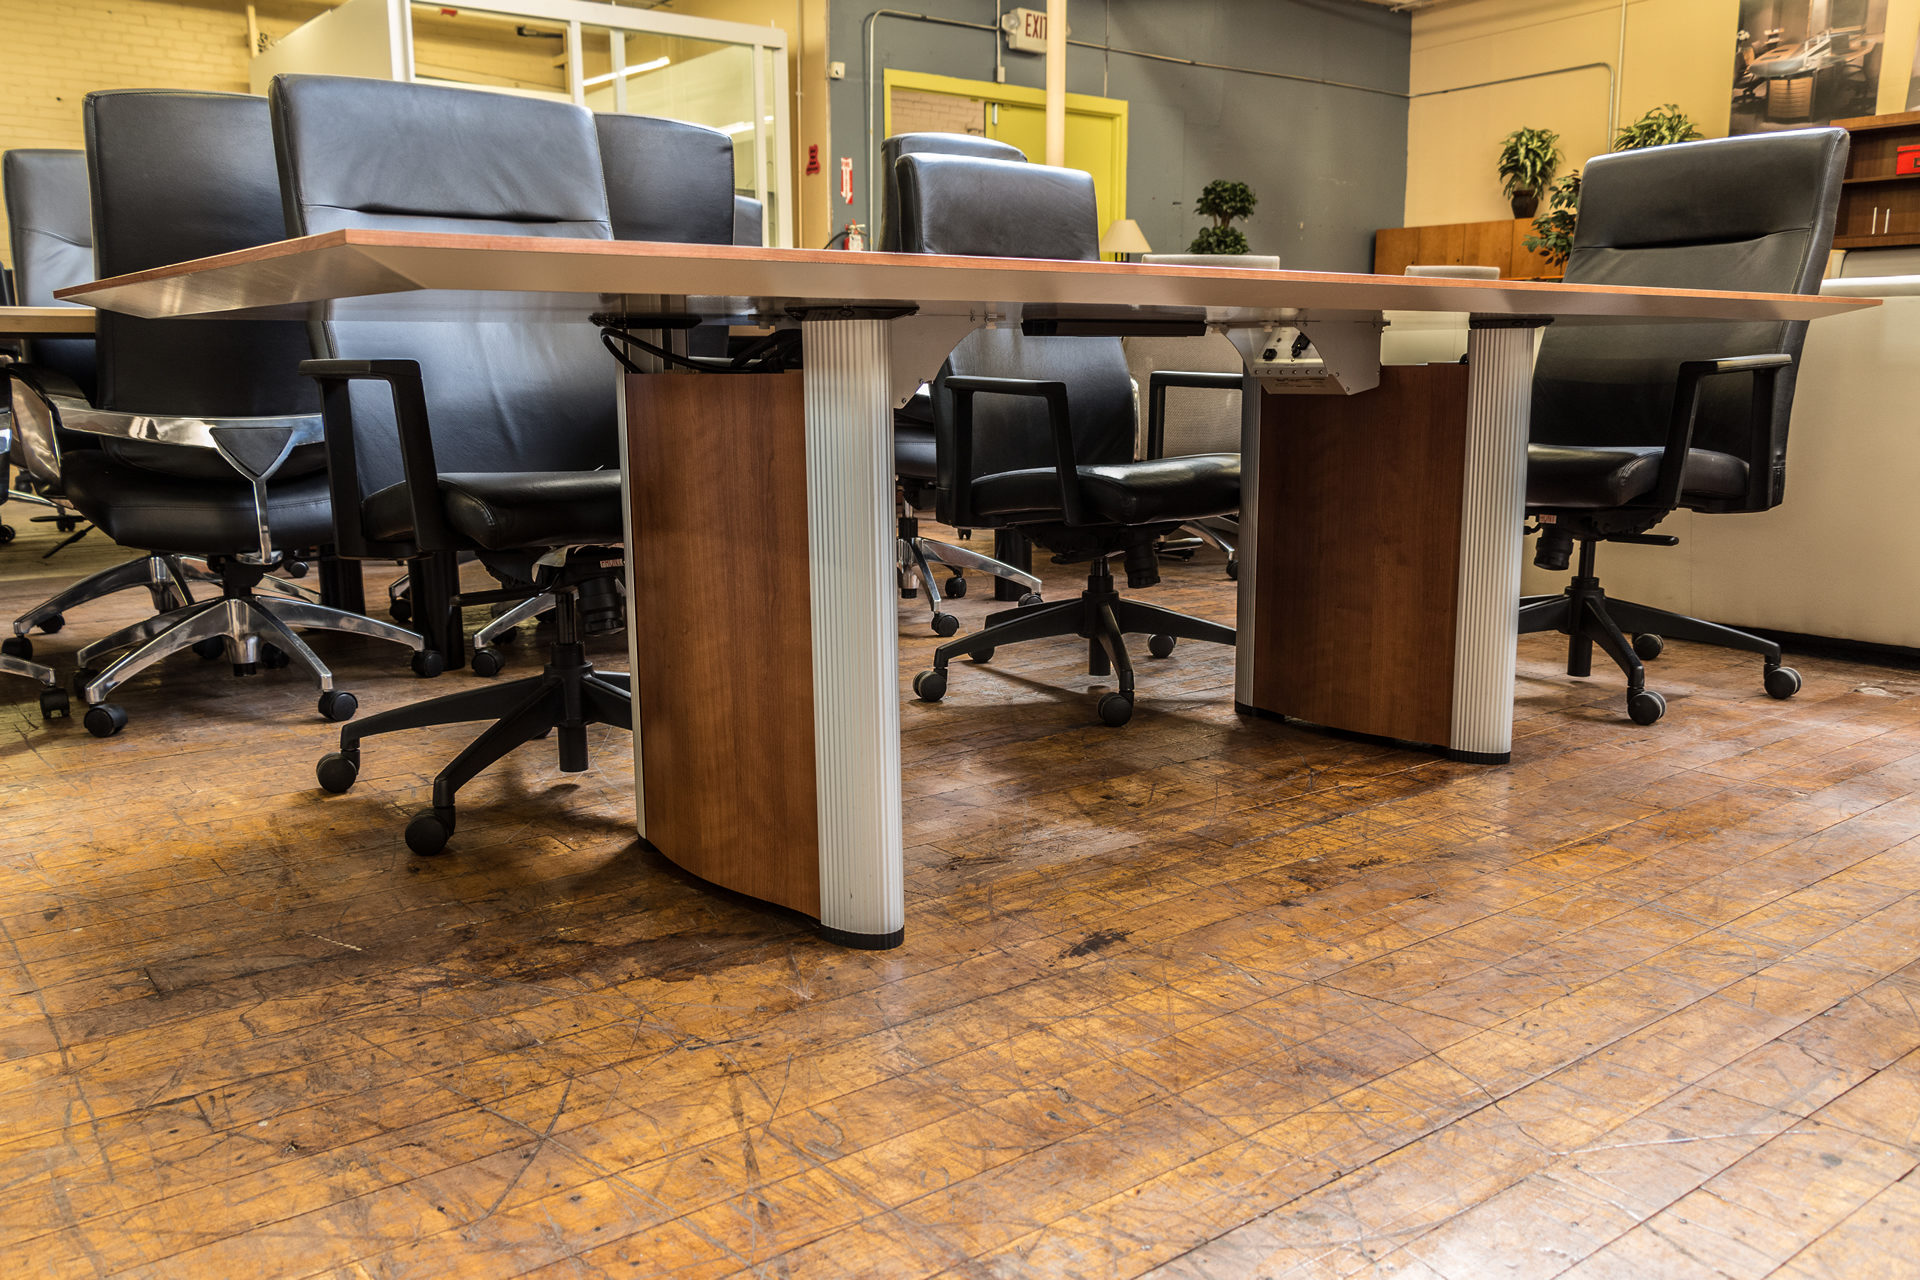 peartreeofficefurniture_peartreeofficefurniture_peartreeofficefurniture_nienkamper-vox-8-x-3-5-cherry-laminate-tapered-edge-conference-table-4.jpg